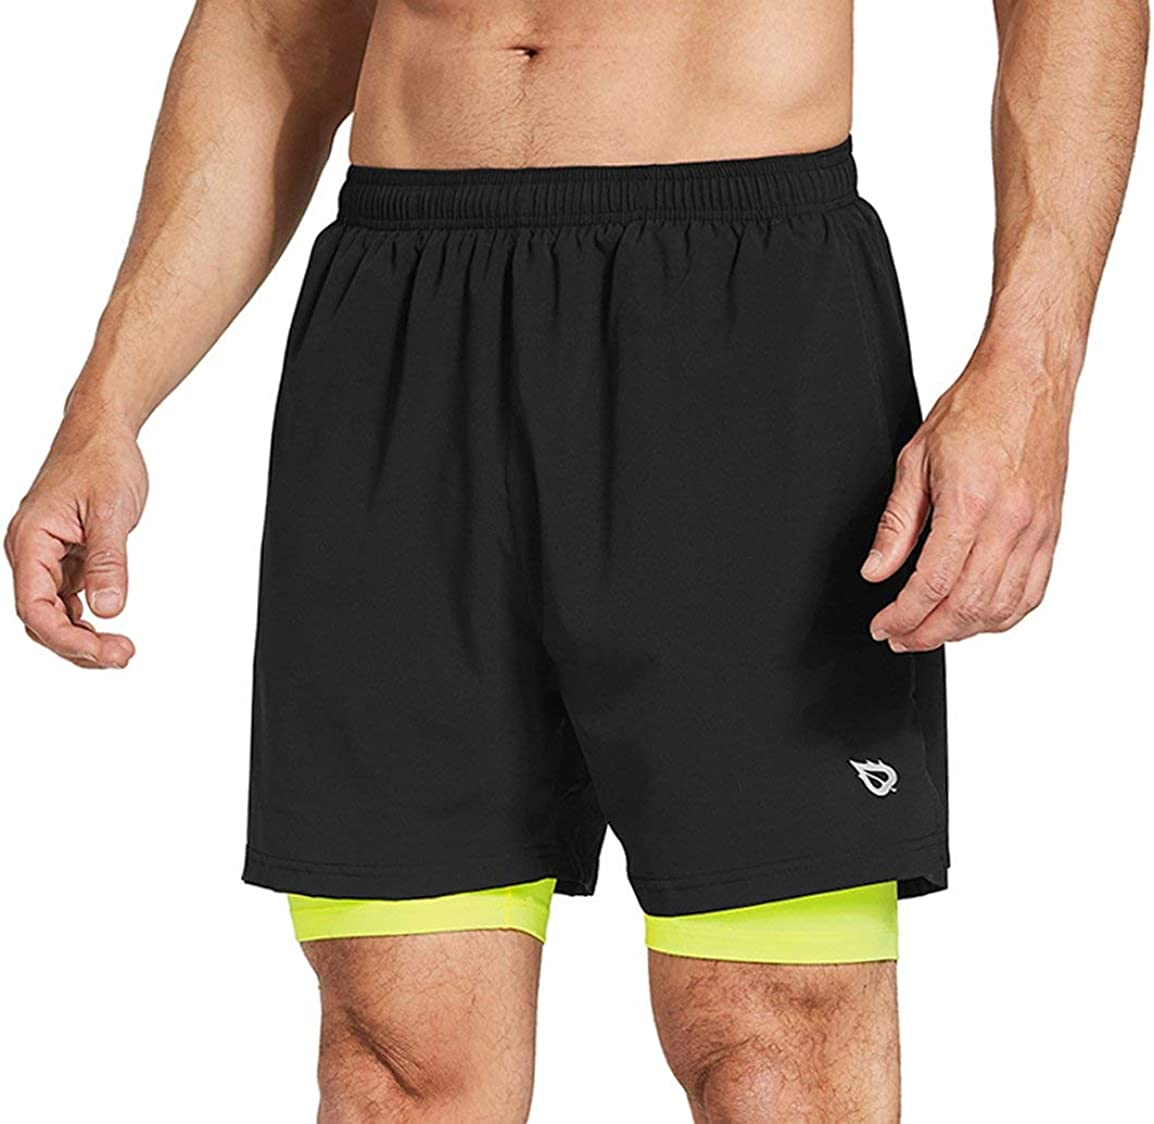 XFLnaraz Mens 2 in 1 Sports Shorts Quick-Drying Breathable Running Shorts Casual Double Layer Gym Shorts with Pocket